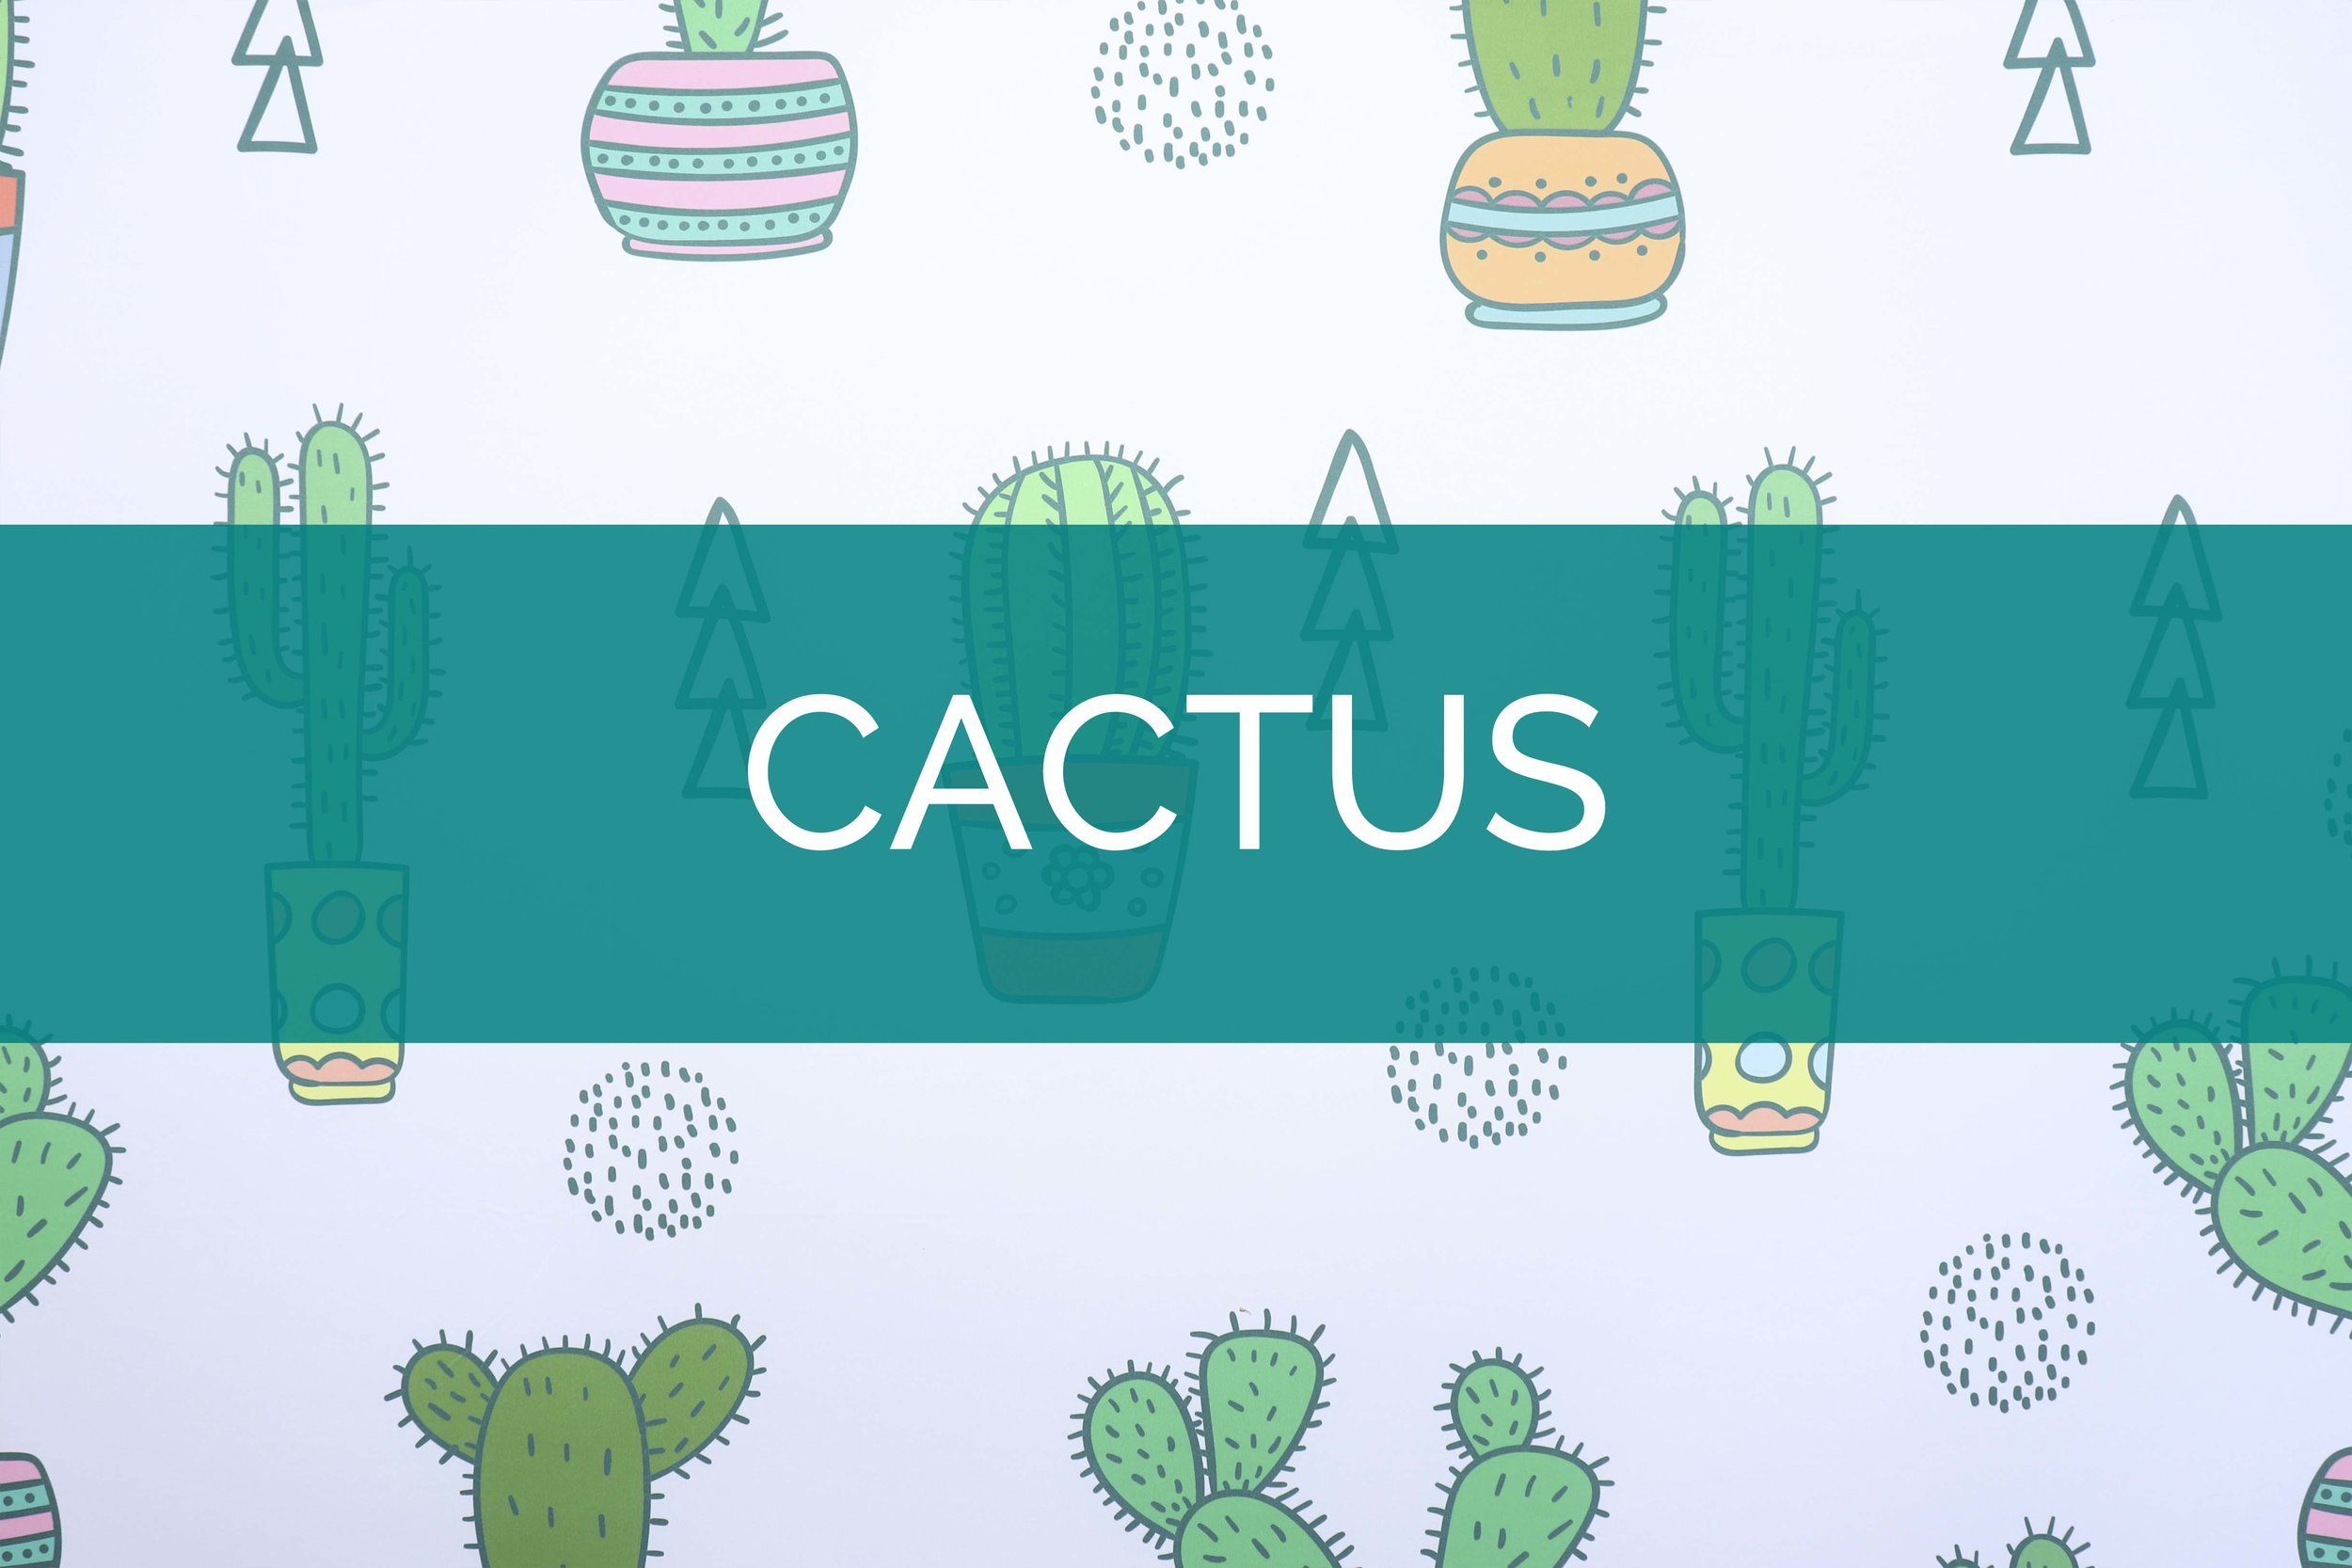 Cactus photo booth backdrop.jpg